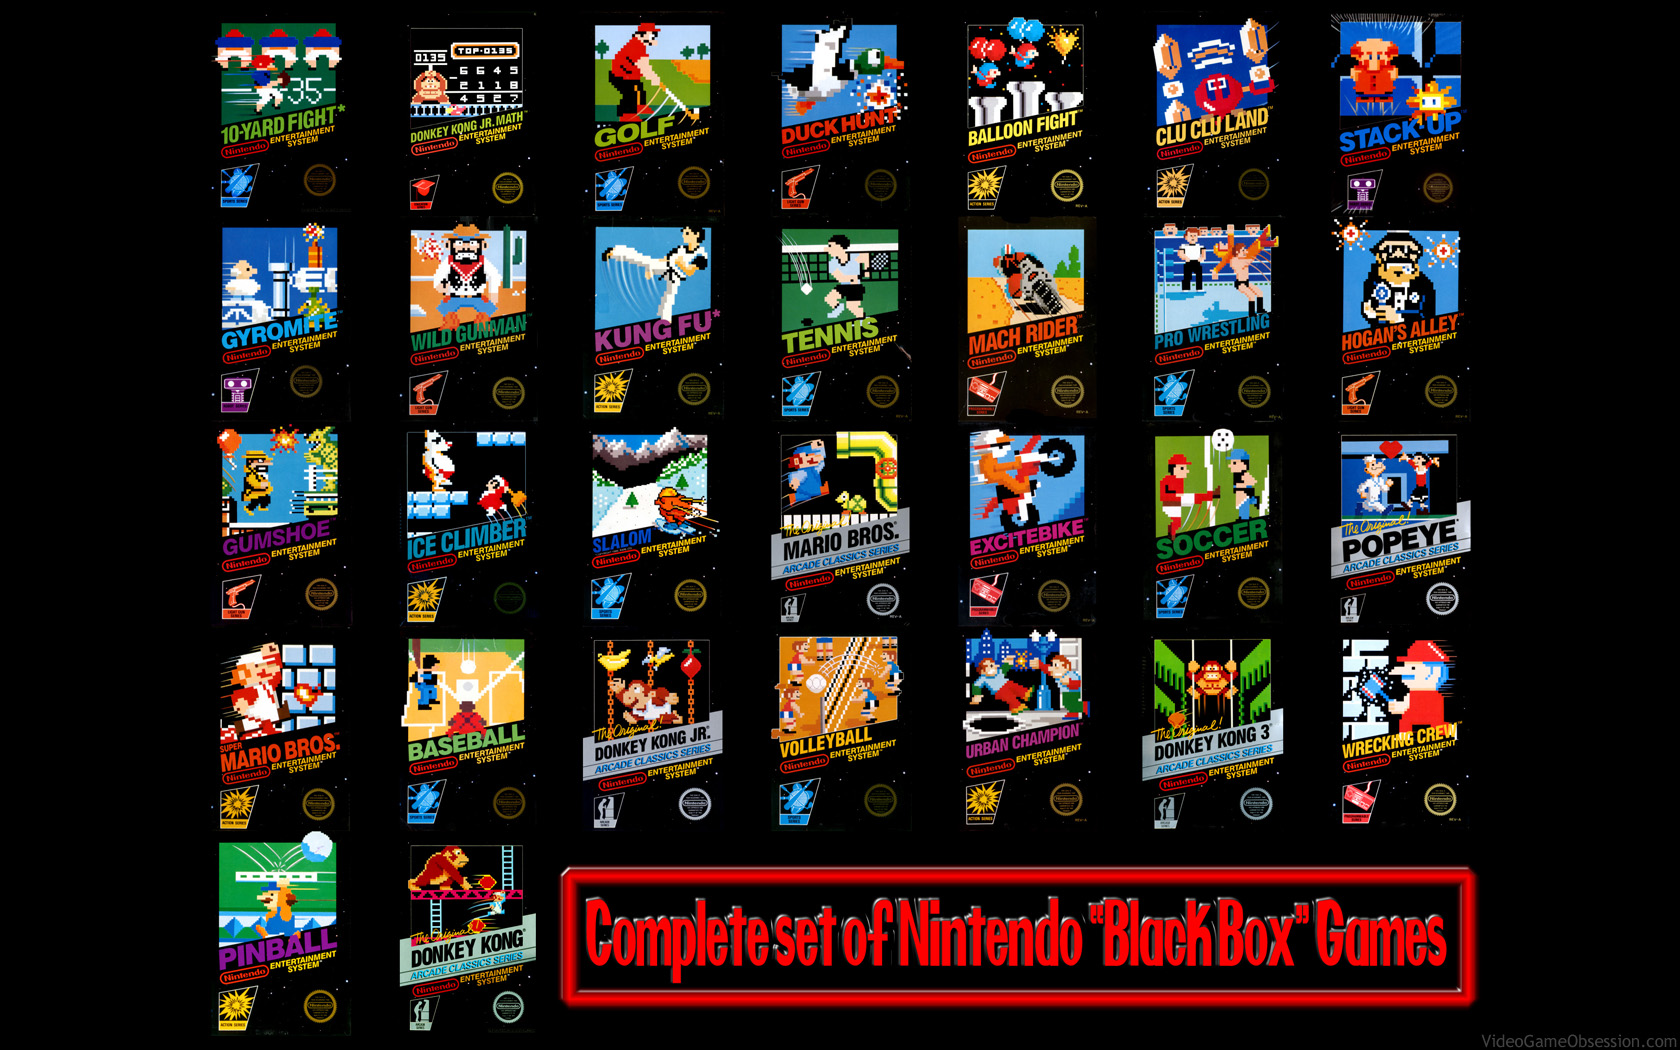 Nintendo Wallpapers - Wallpapers Browse